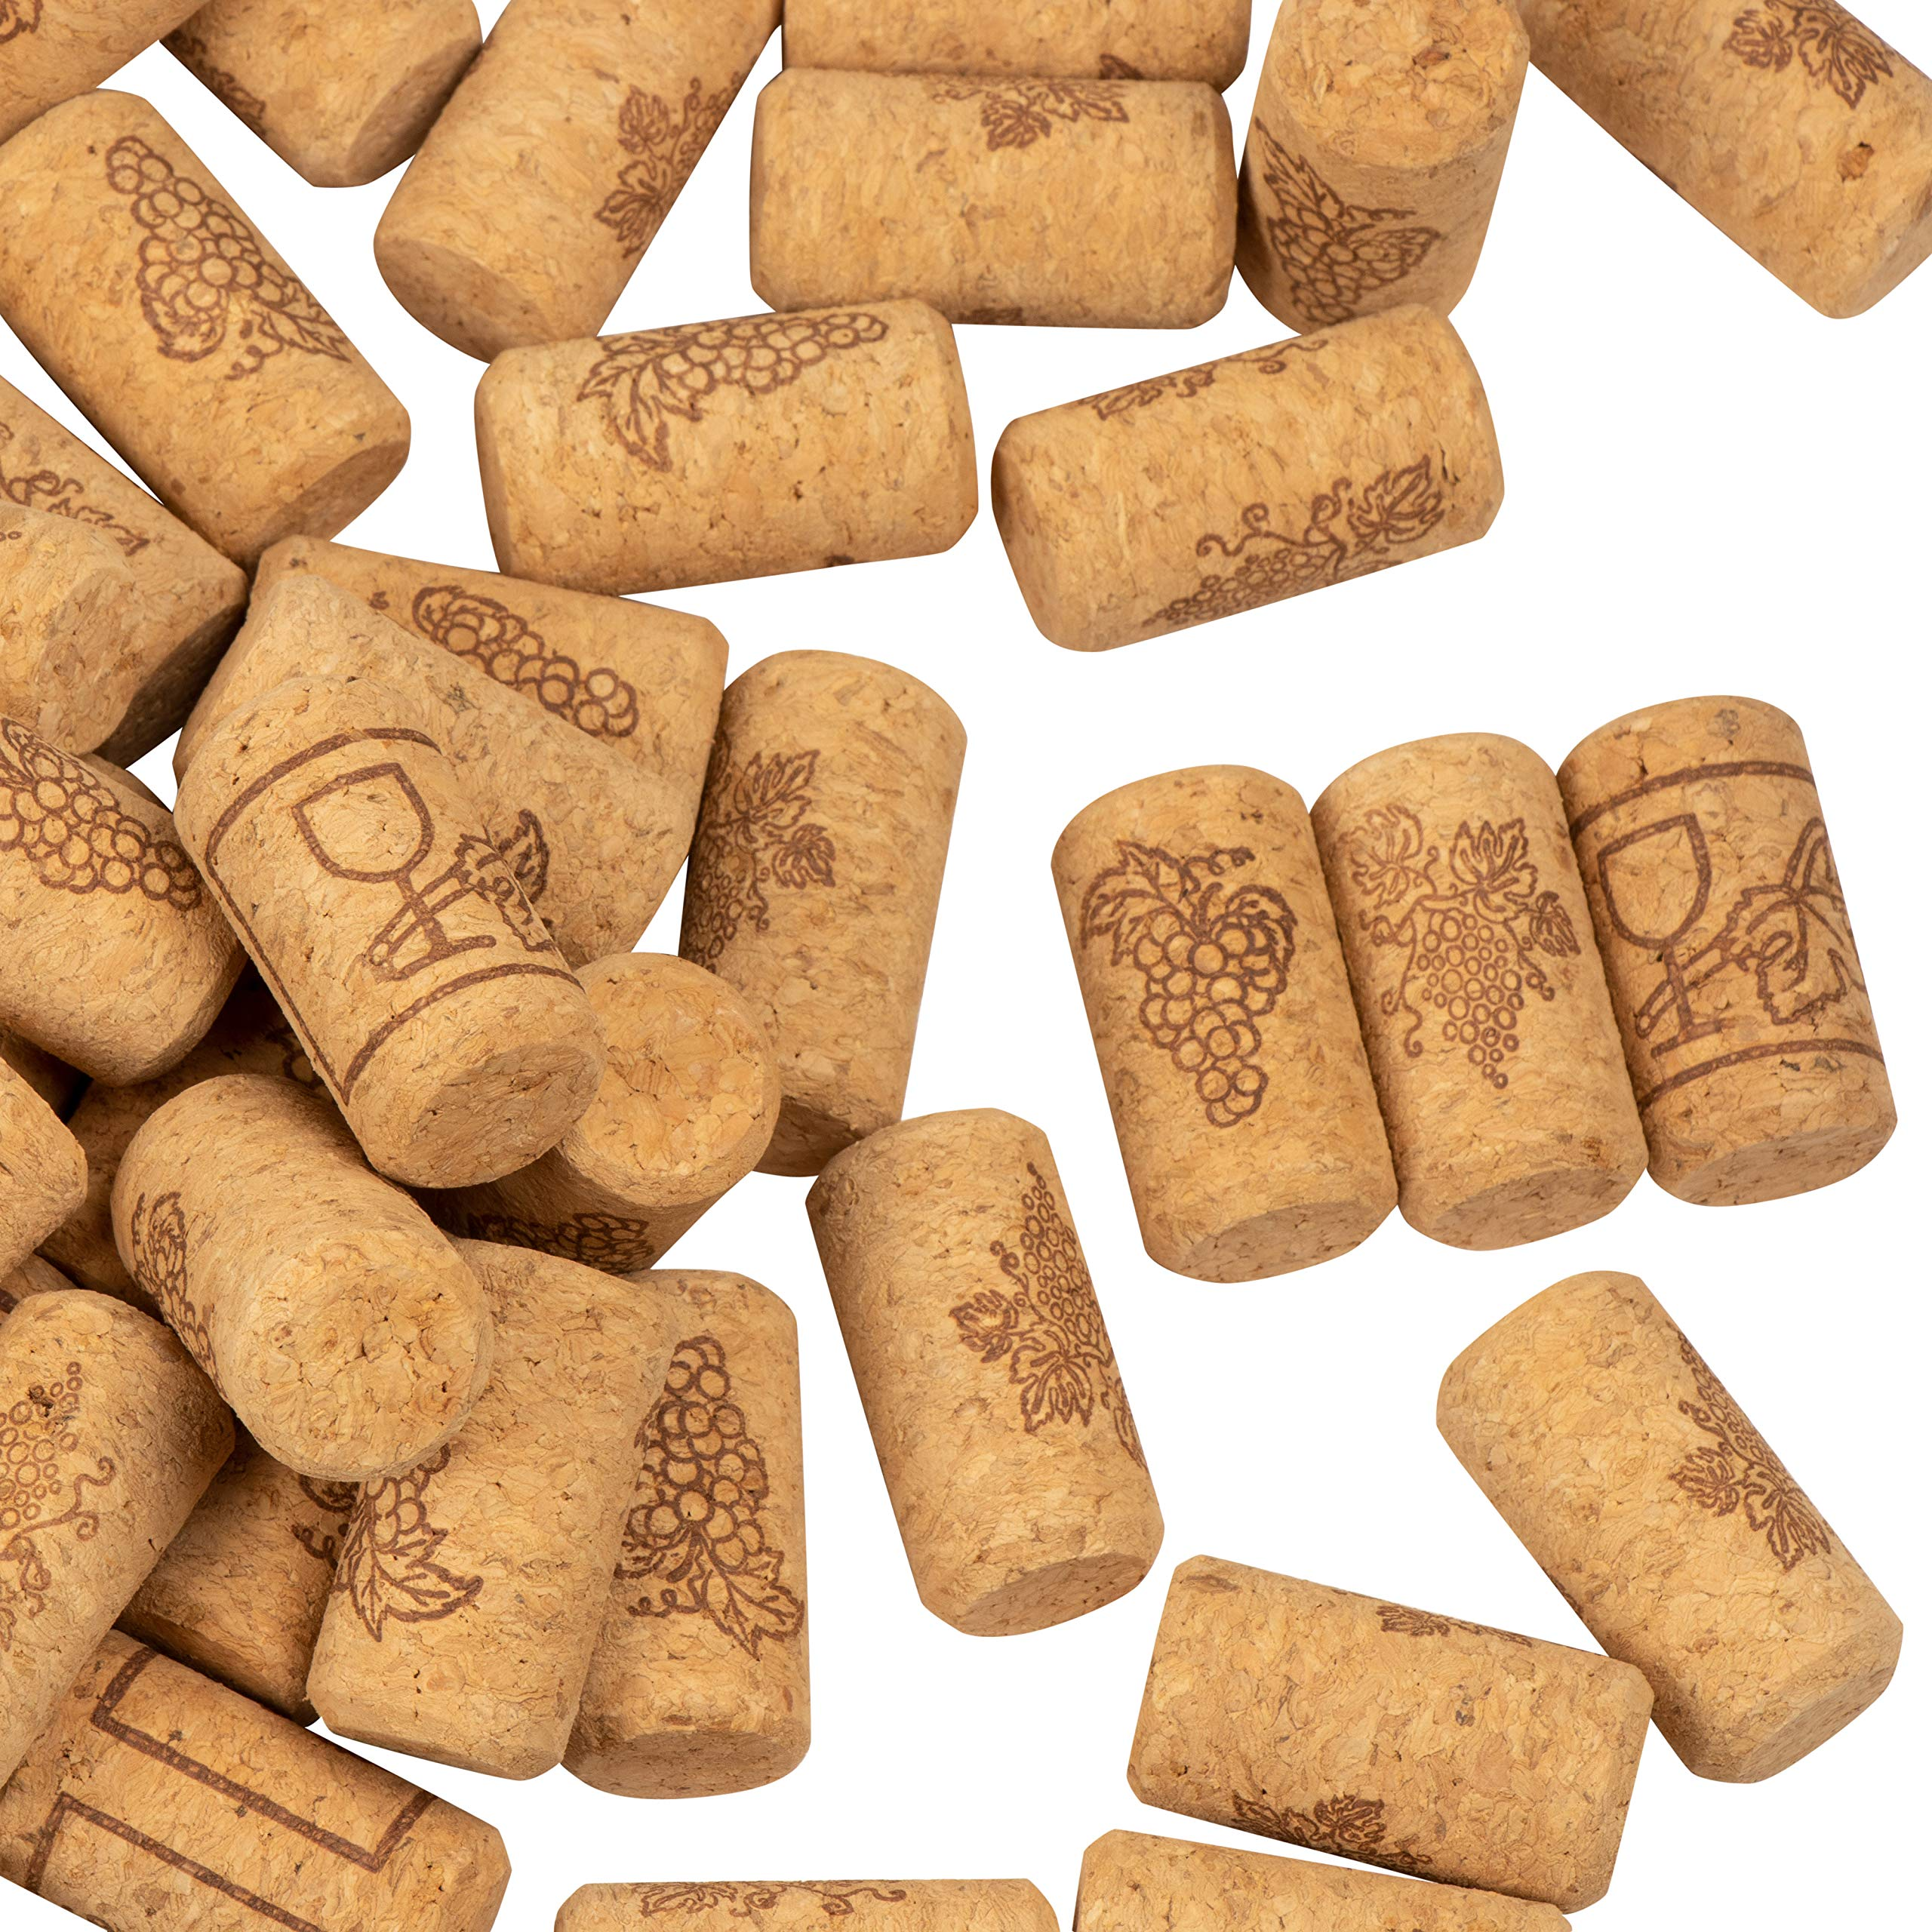 Set of 200 Wine Corks - Bottle Corks with Grape Vine Design, Non-Recycled Straight Corks, Natural Cork Stoppers, Brown - 0.93 x 1.7 Inches